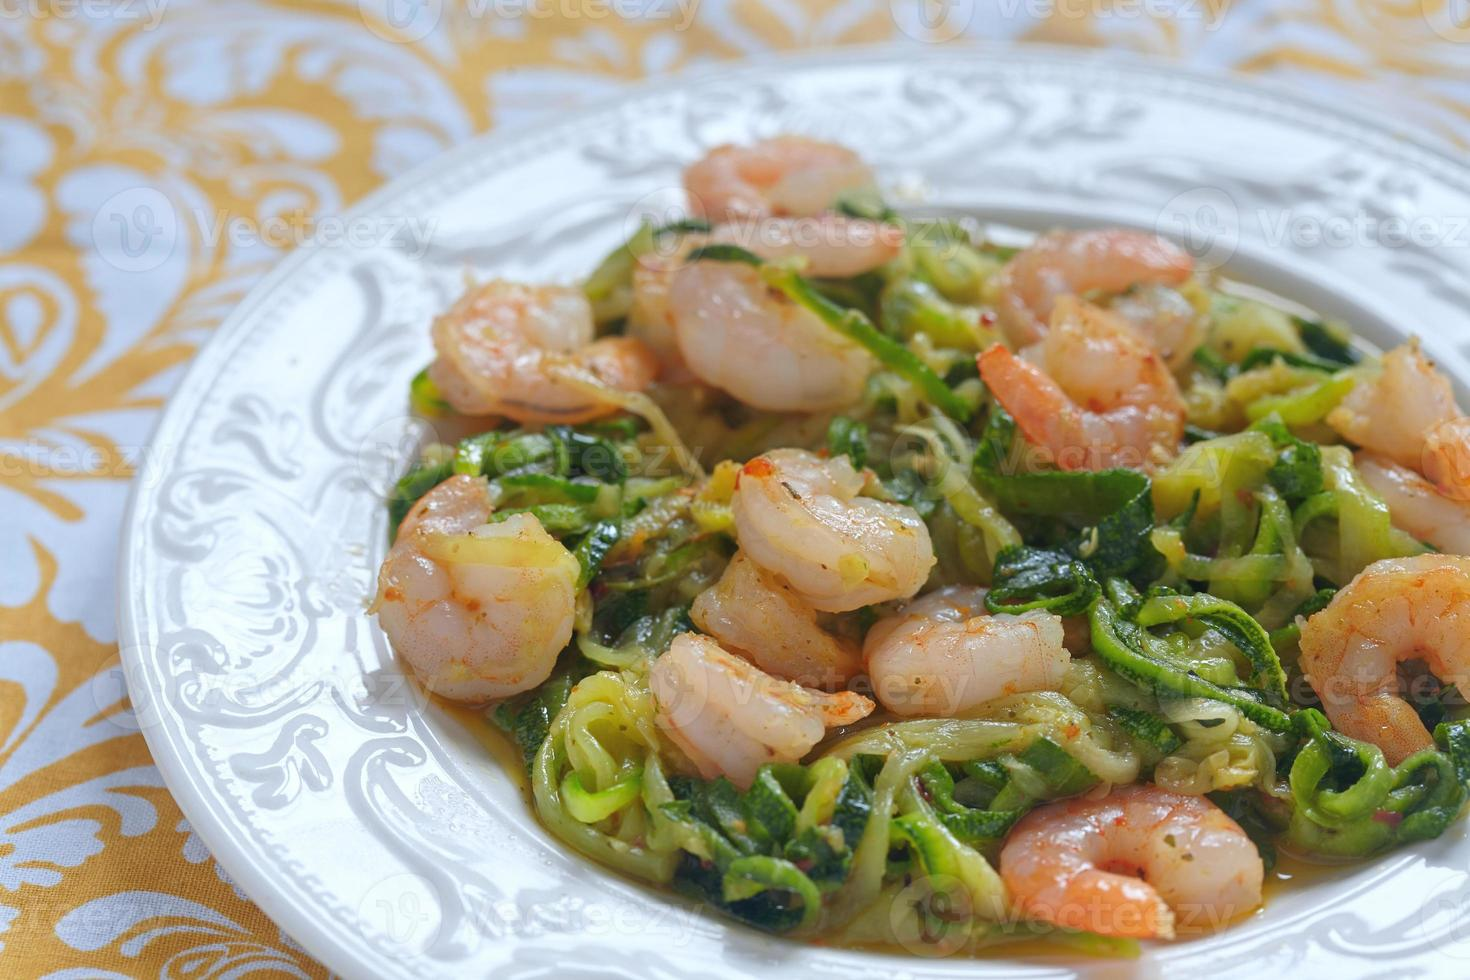 Zucchini pasta with a shrimps photo